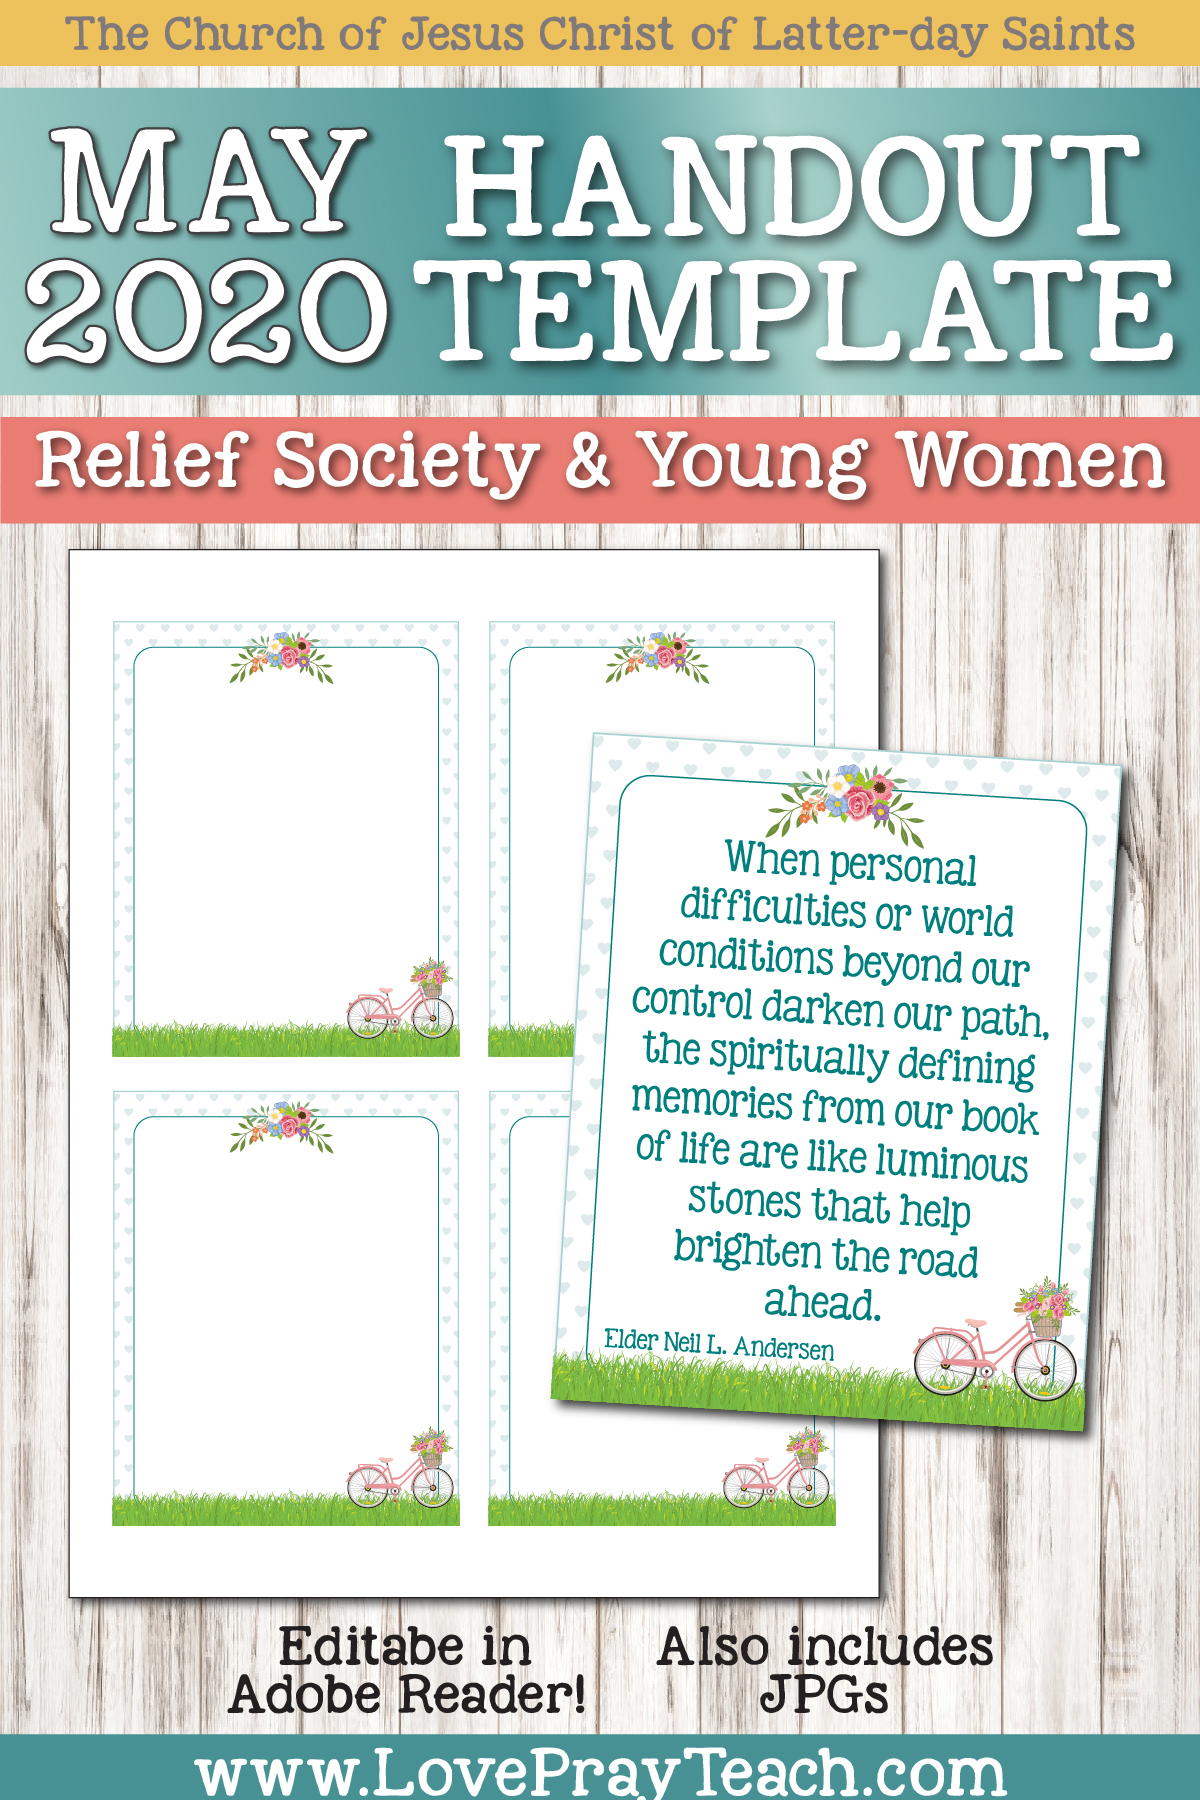 Our editable newsletter bundle is designed for Relief Society and Young Women classes! Help your class stay informed of upcoming events, birthdays, activities, Ministering, etc! We include easy to follow instructions to add text in Adobe Reader (free program!) You can print, email, post to social media, text, or add to Circles! www.LovePrayTeach.com #EditableNewsletter #May2020